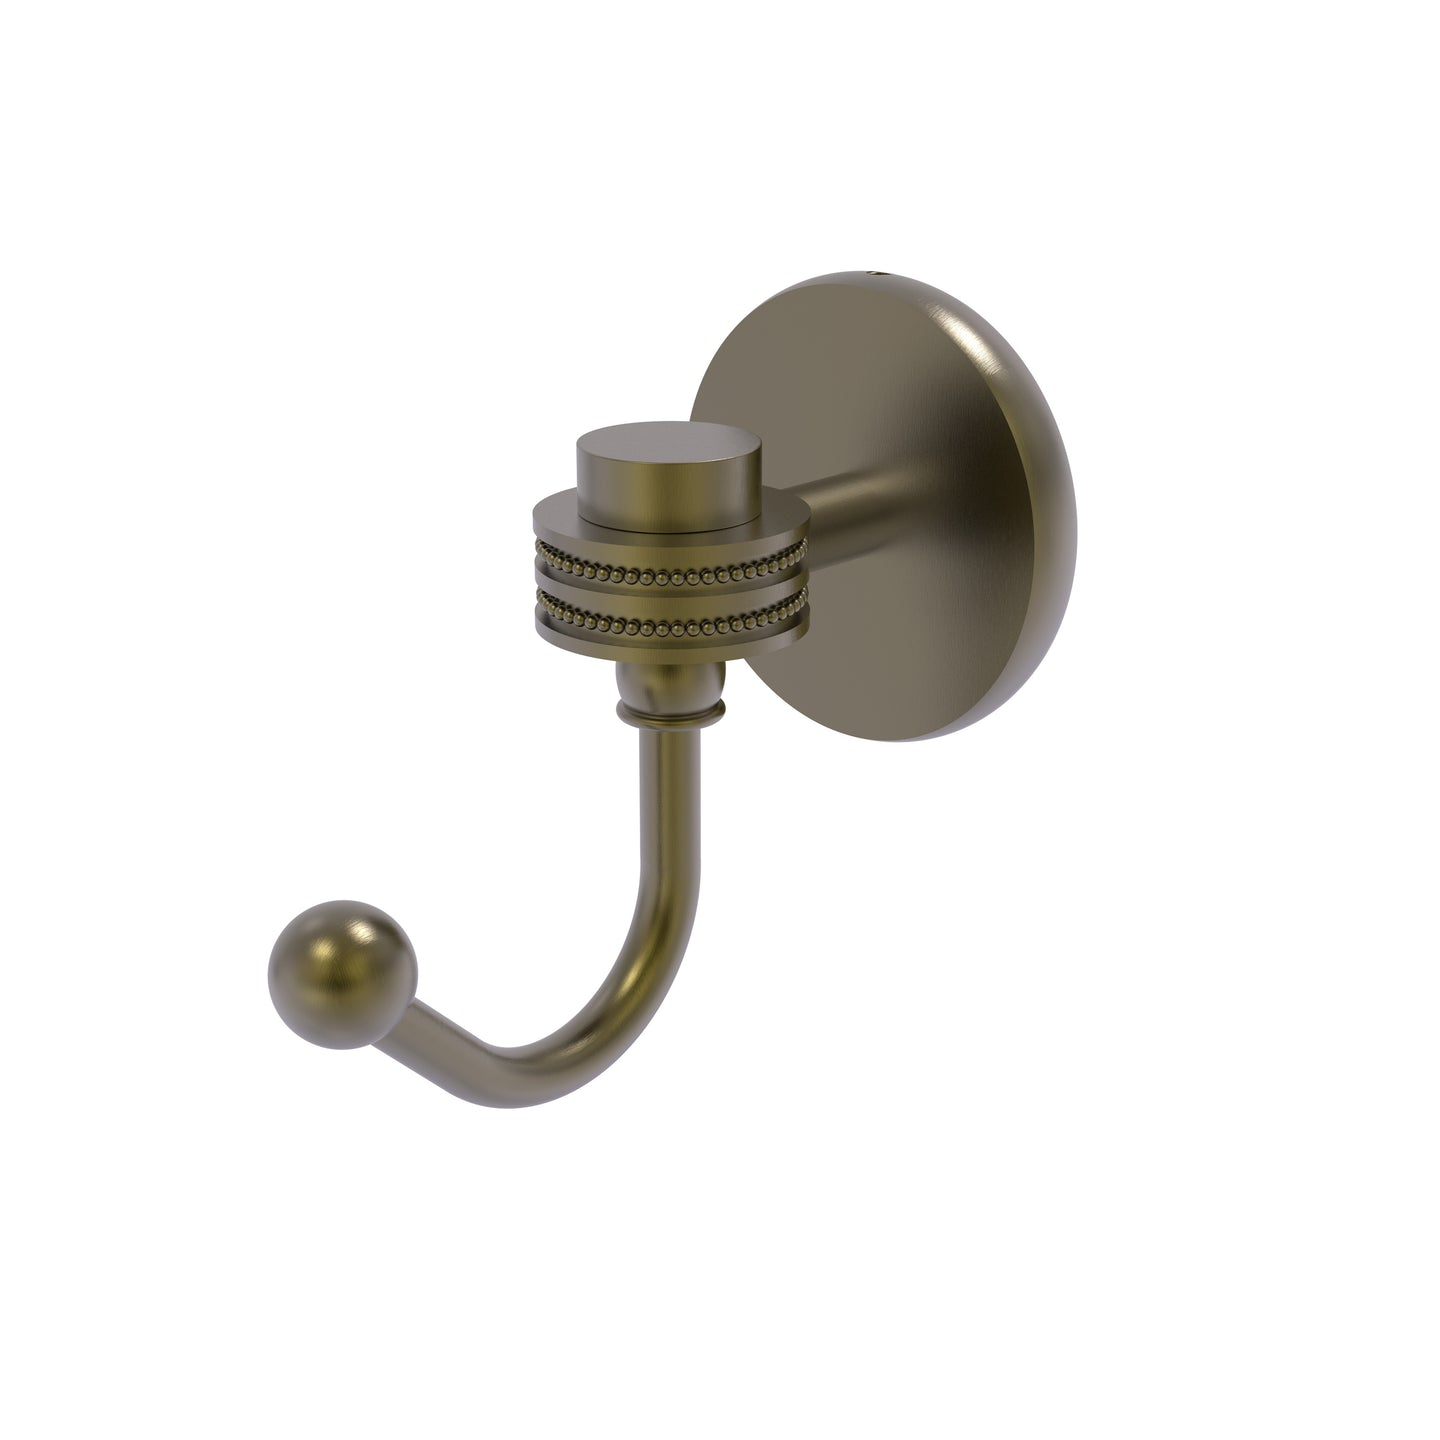 Allied Brass - Satellite Orbit One Robe Hook with Dotted Accents